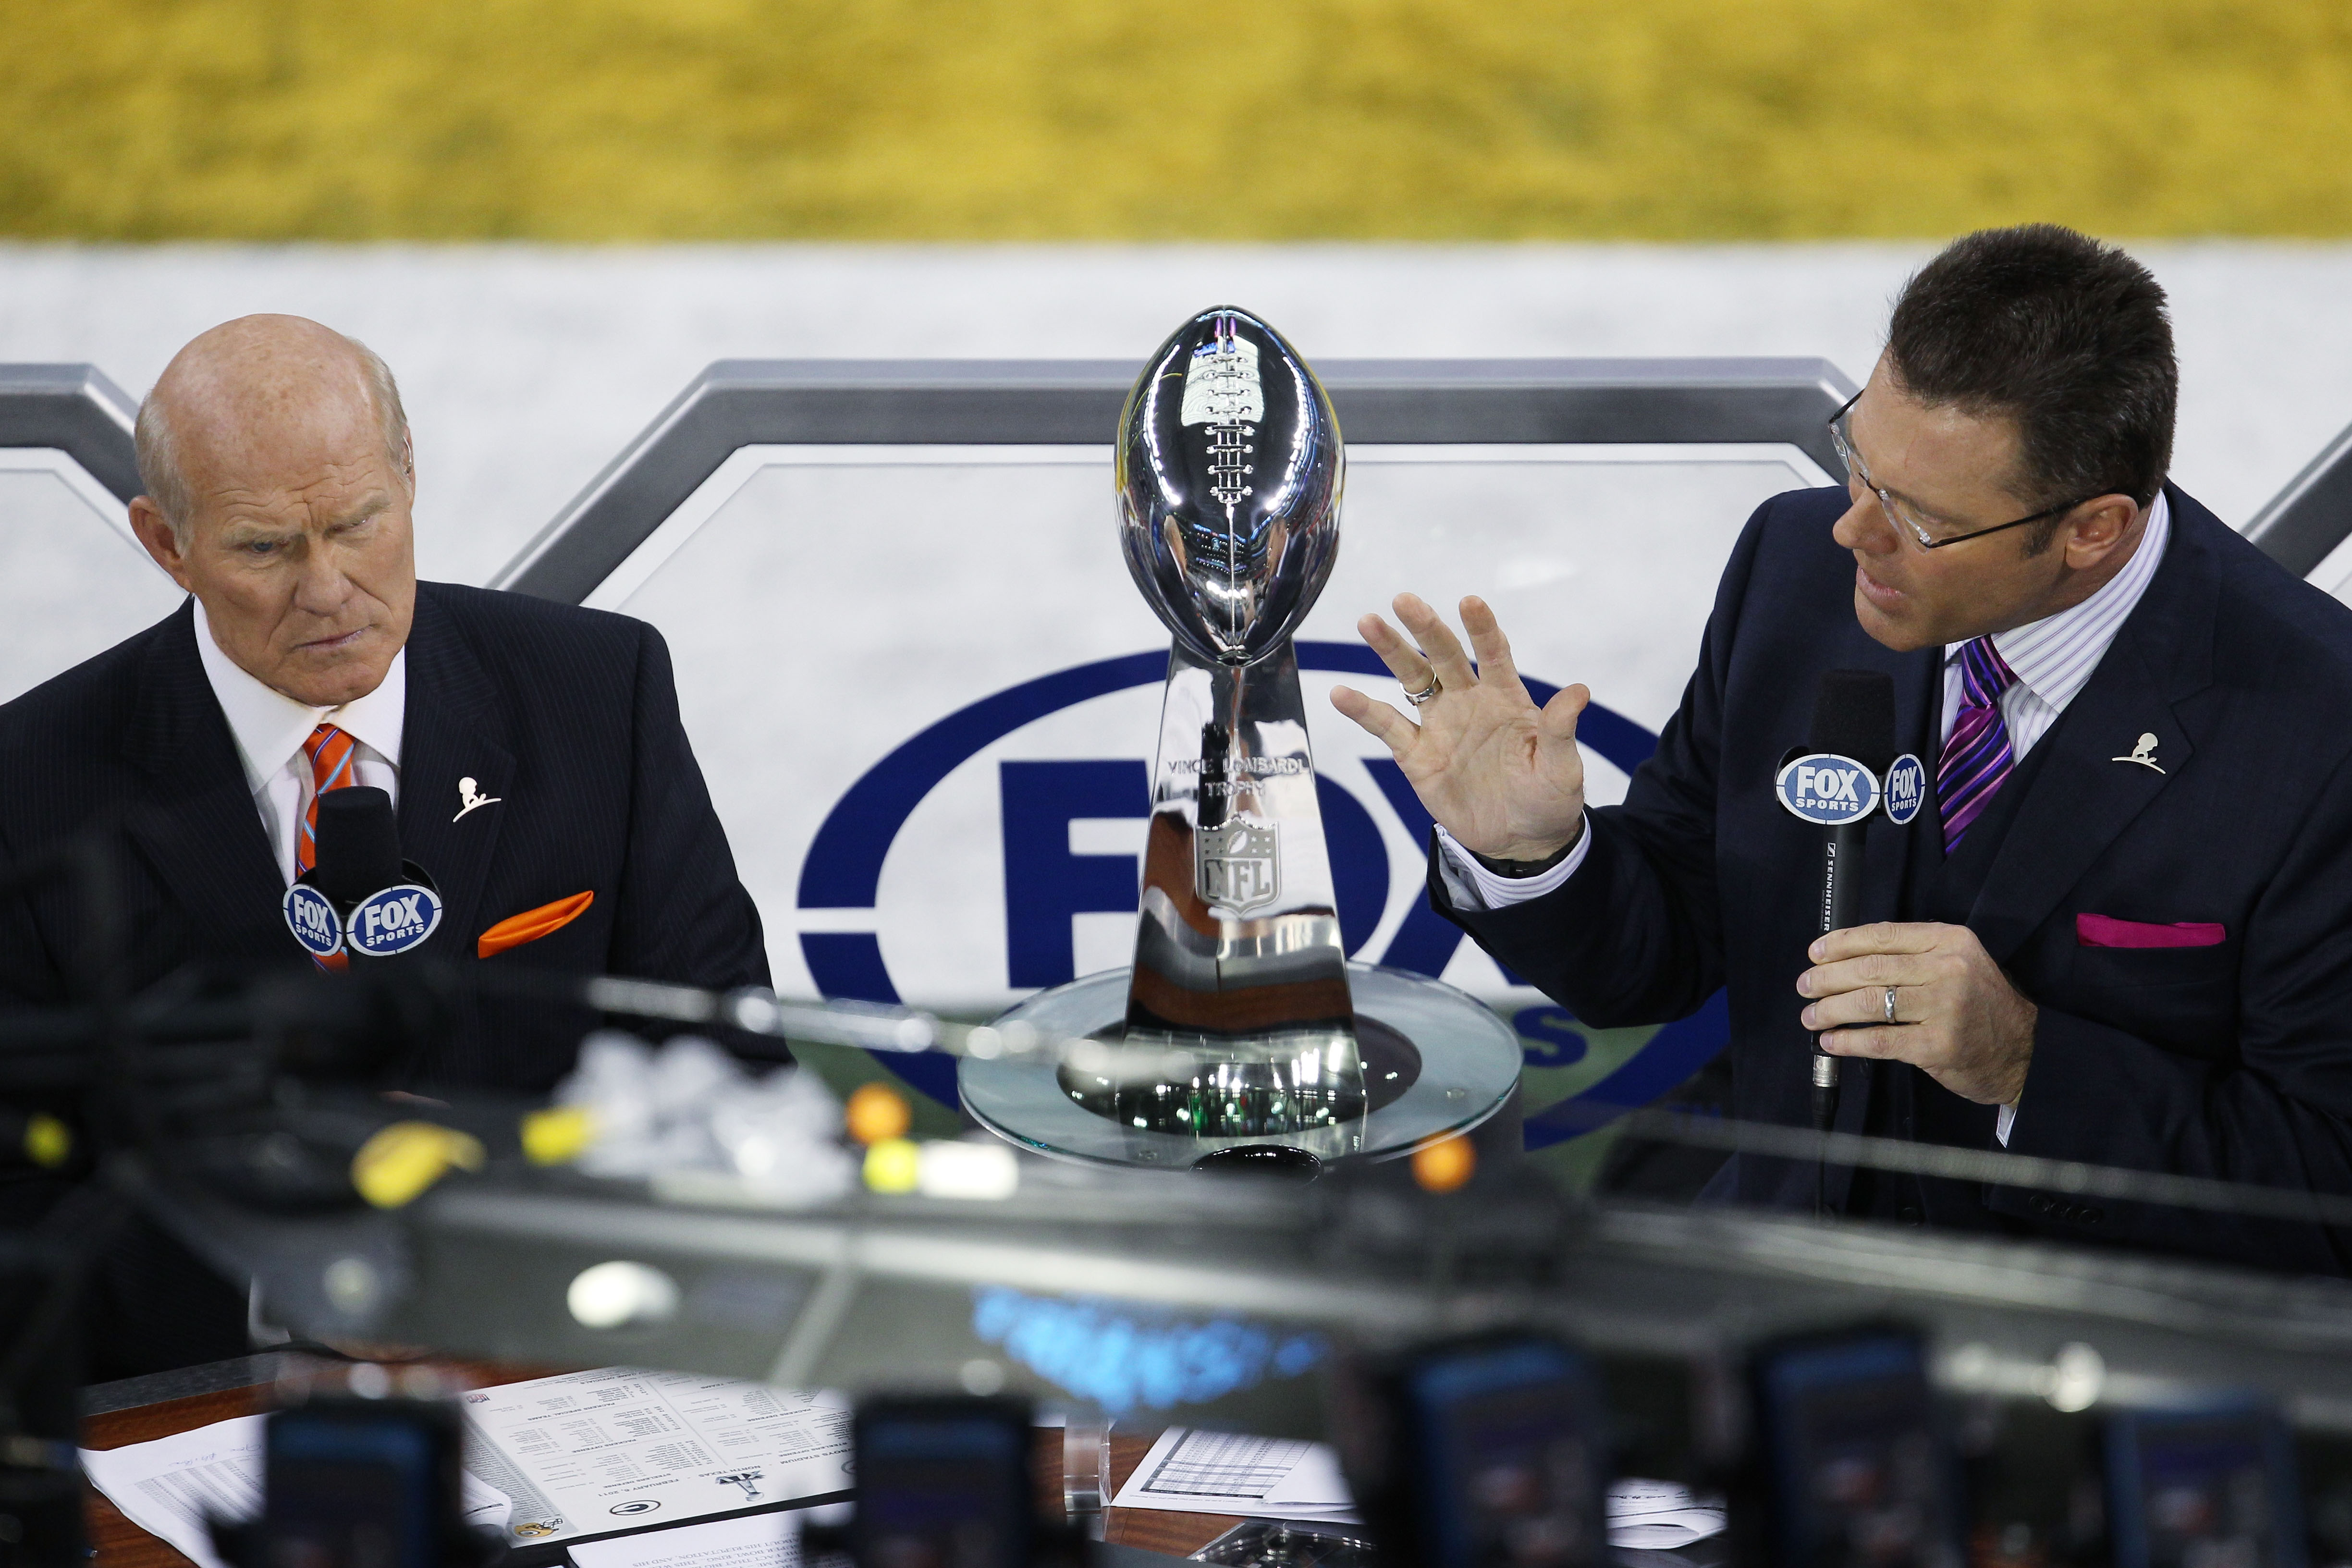 ARLINGTON, TX - FEBRUARY 06: Fox broadcasters, Terry Bradshaw (L) and Howie Long commentate prior to Super Bowl XLV between the Green Bay Packers and the Pittsburgh Steelers at Cowboys Stadium on February 6, 2011 in Arlington, Texas.  (Photo by Jonathan D